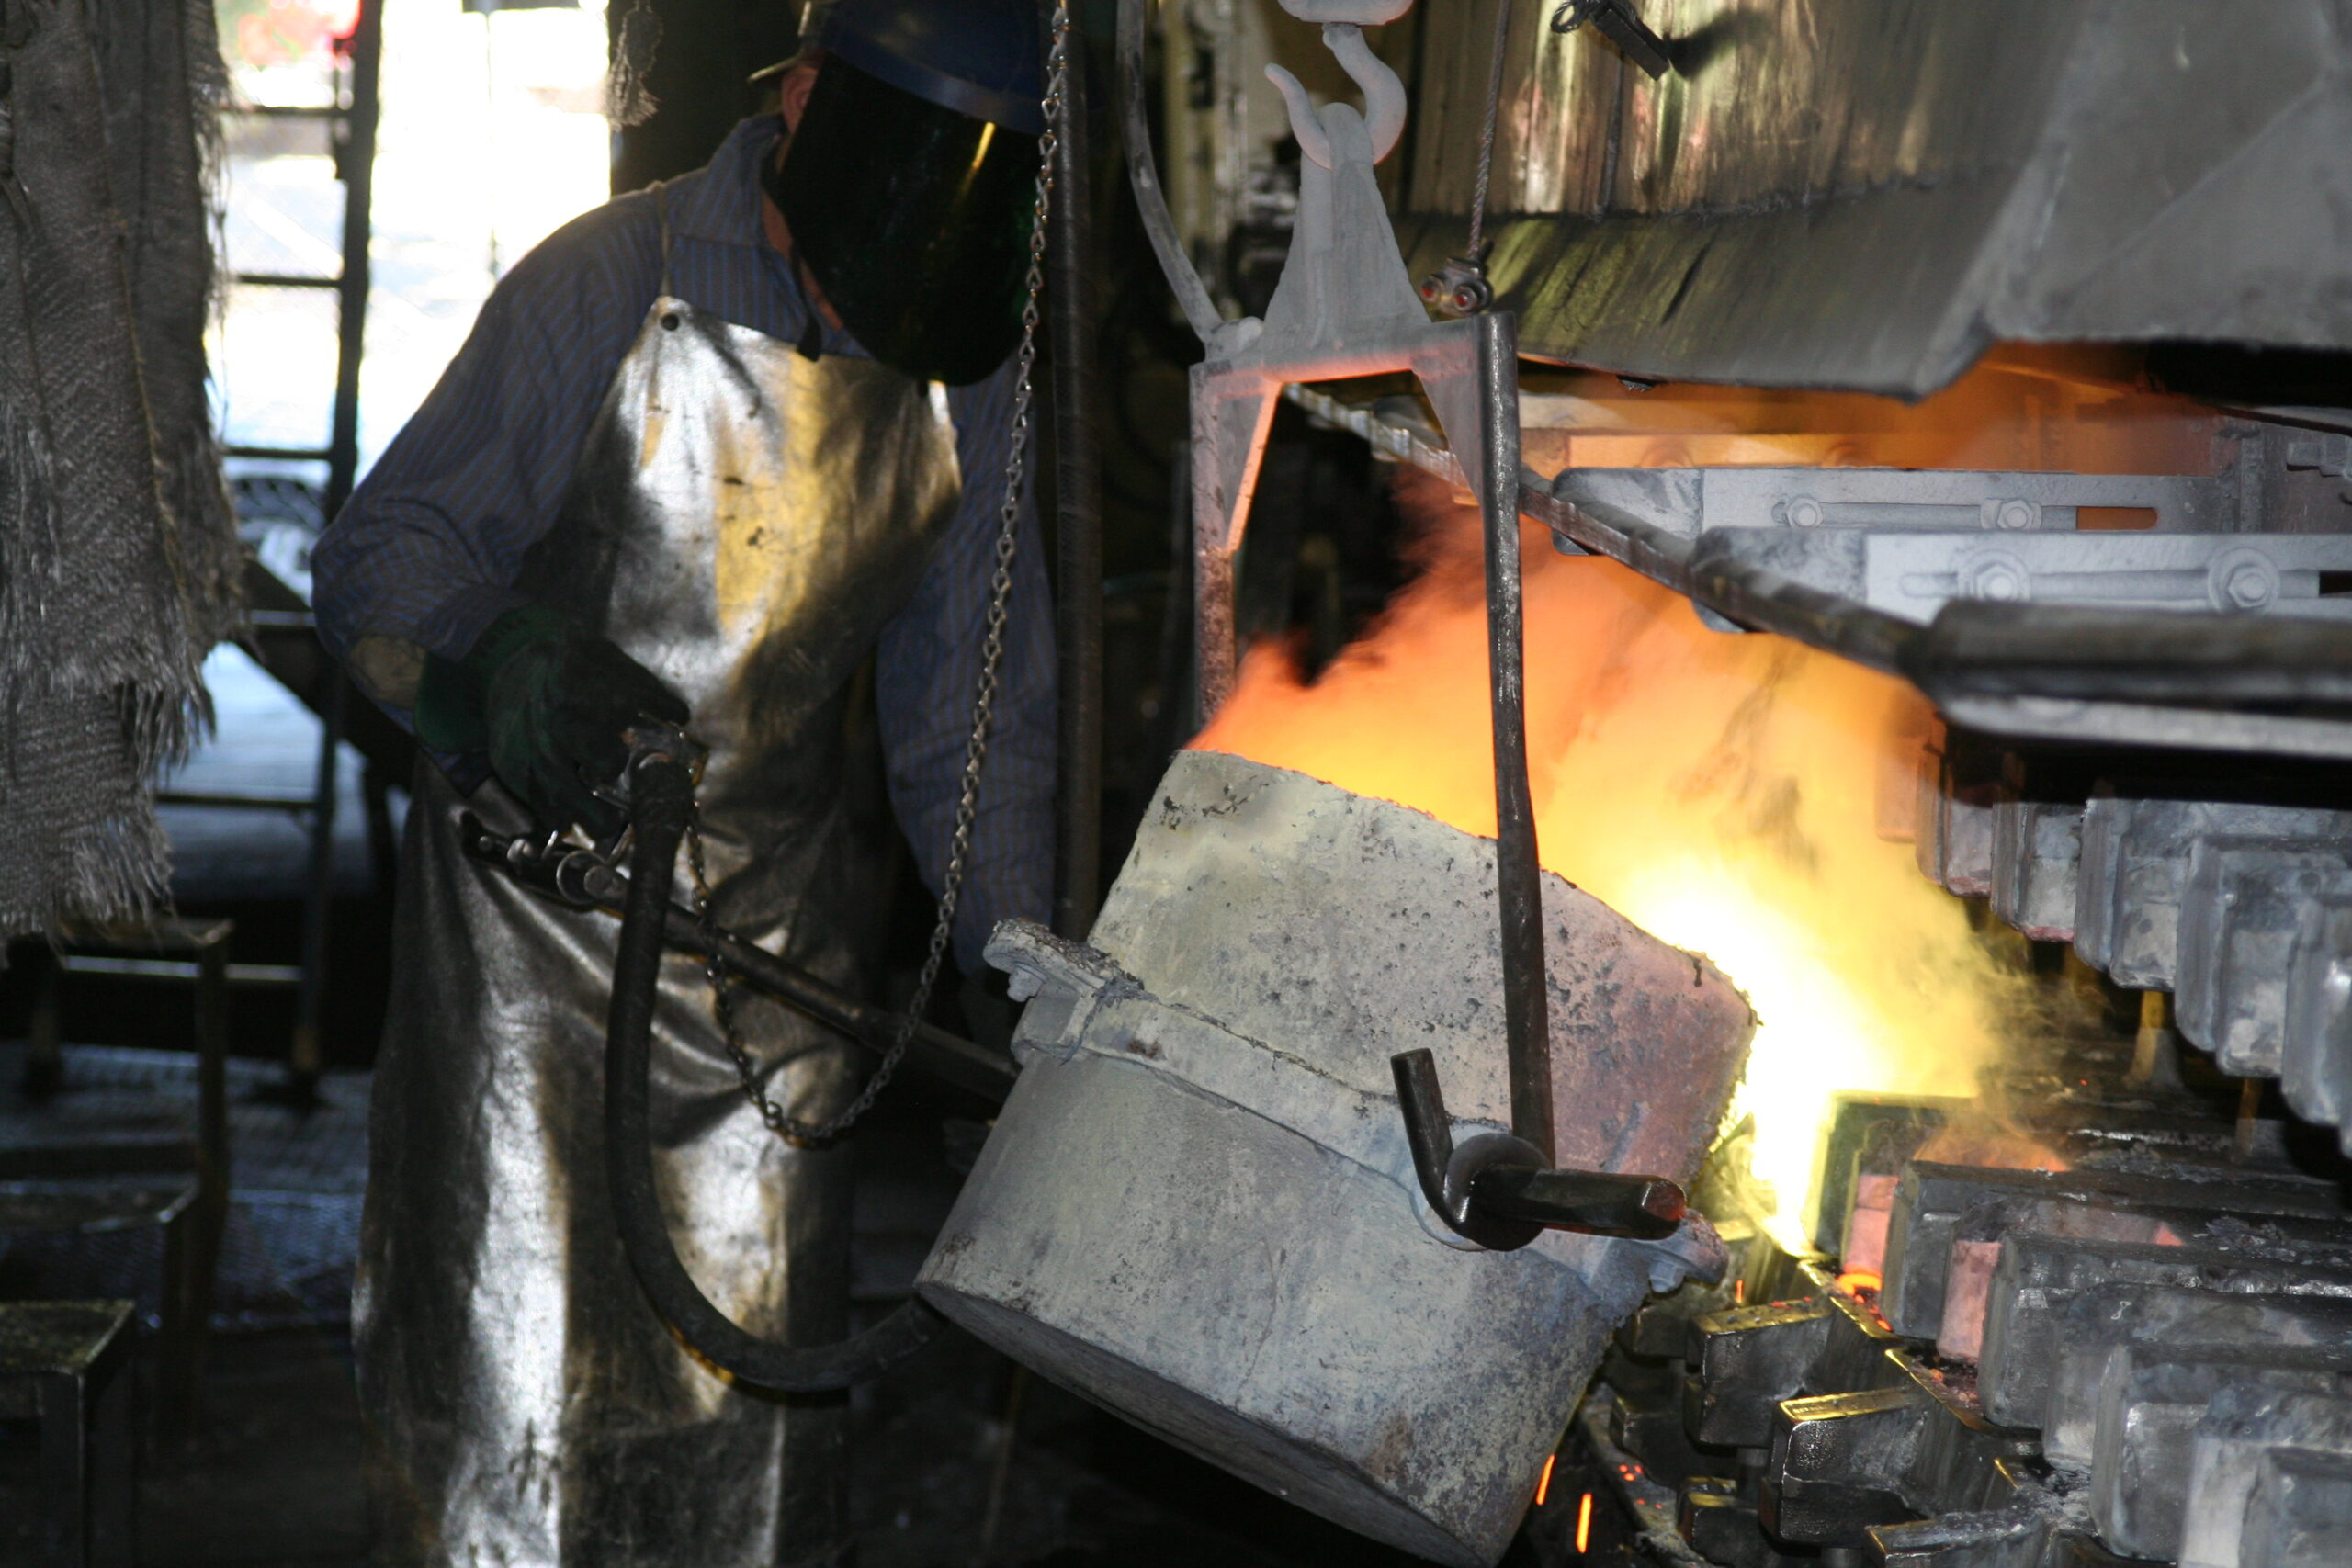 Arrowhead Brass Foundry Worker Pouring Hot Metal